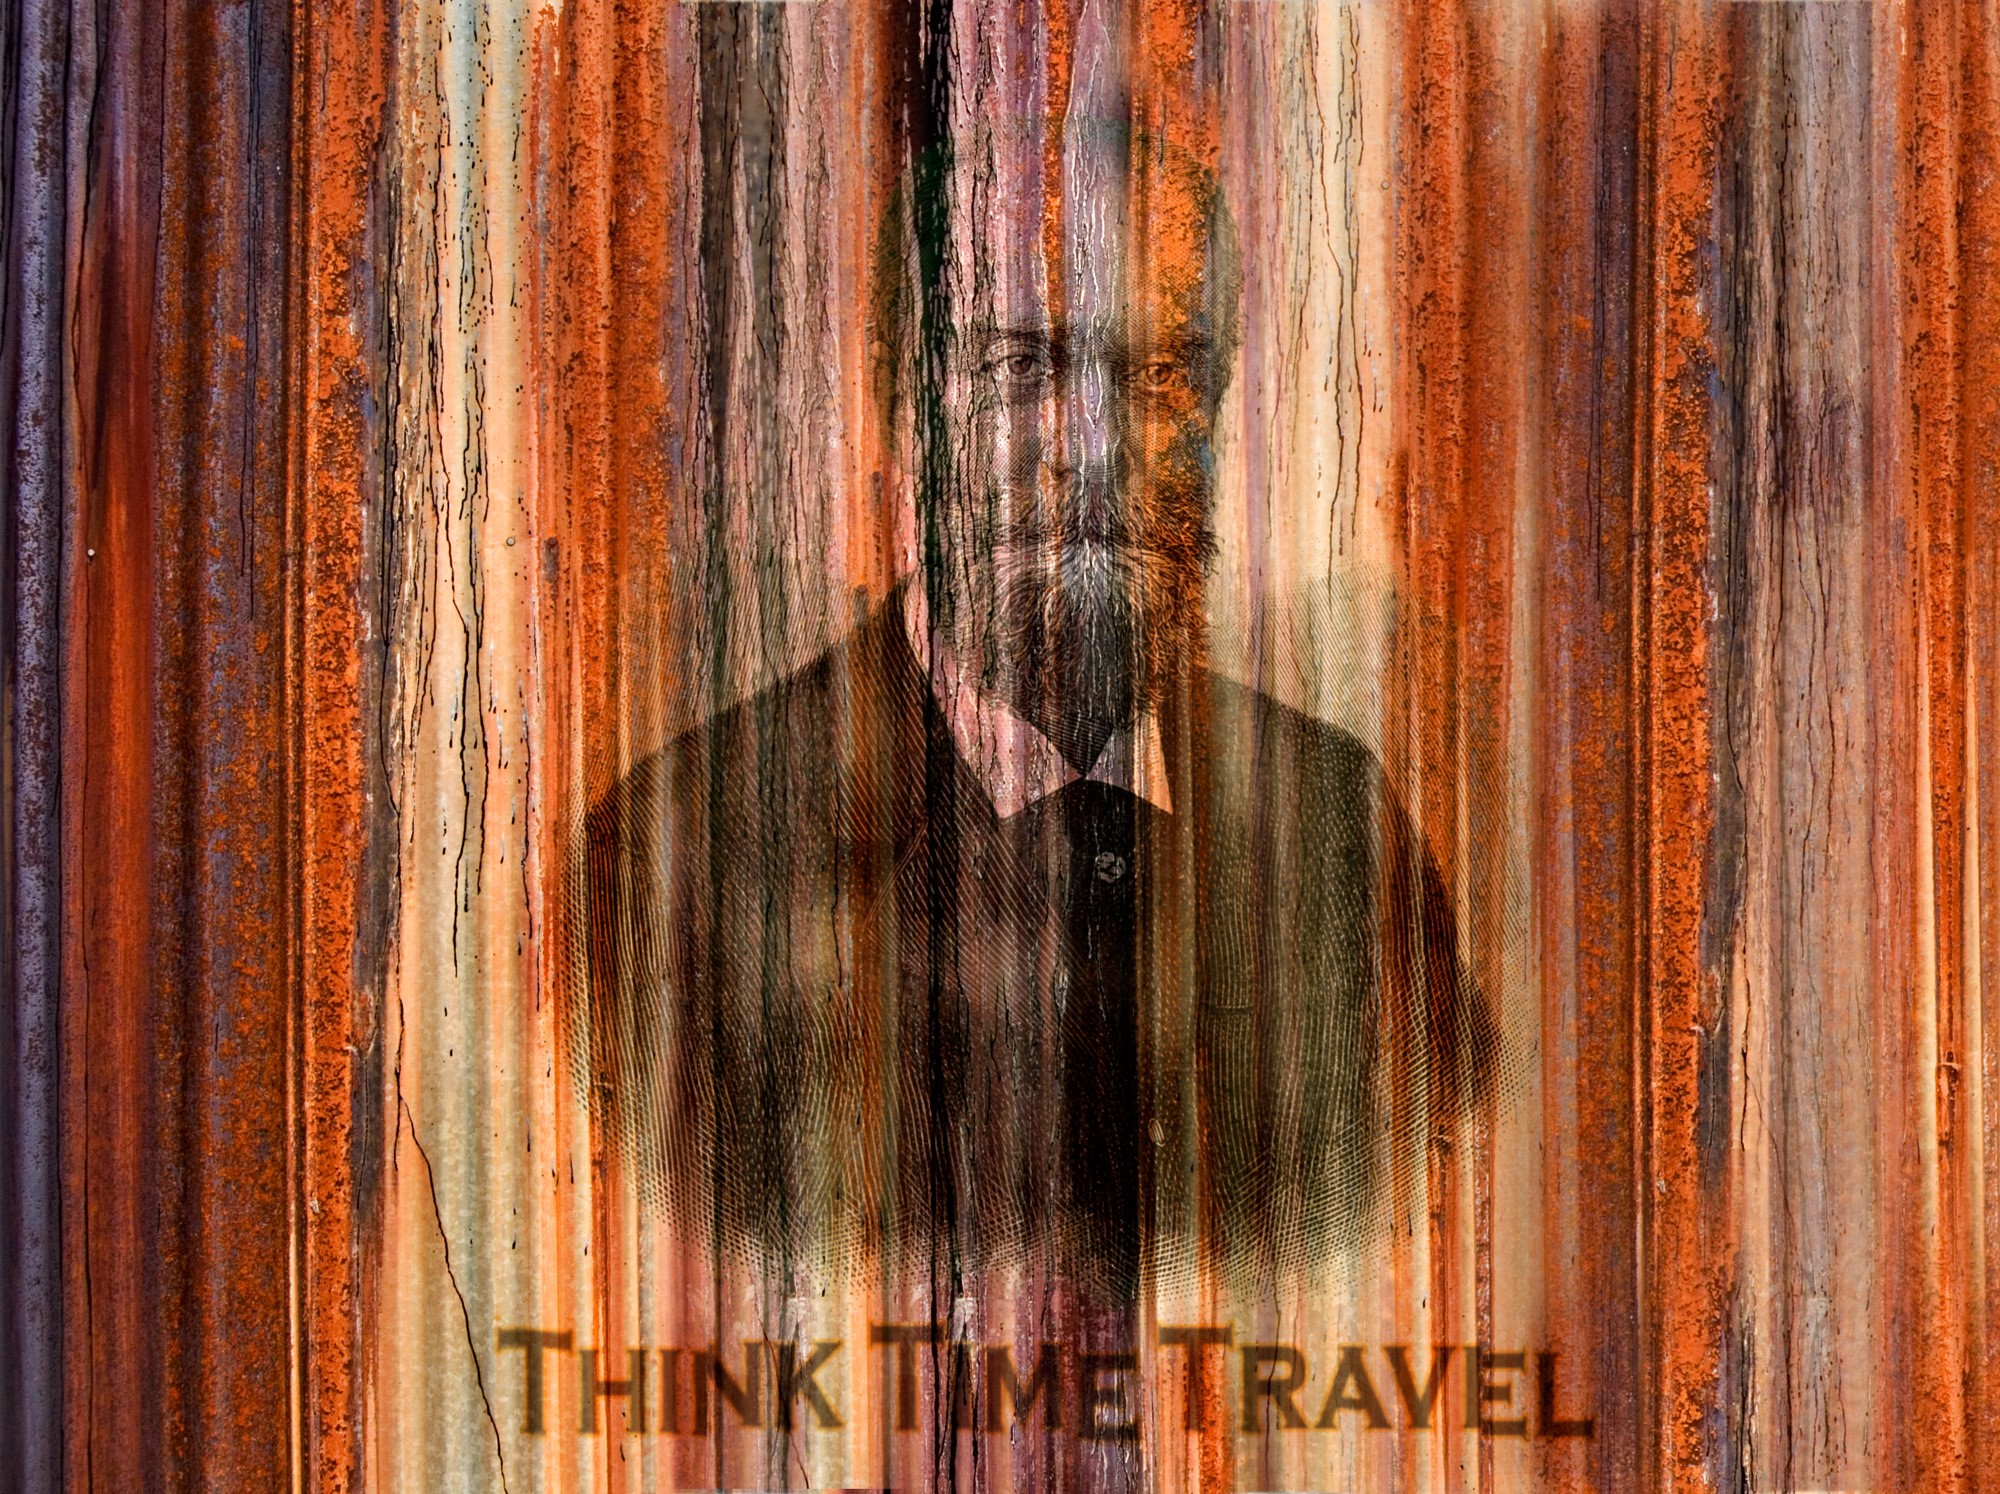 Think Time Travel